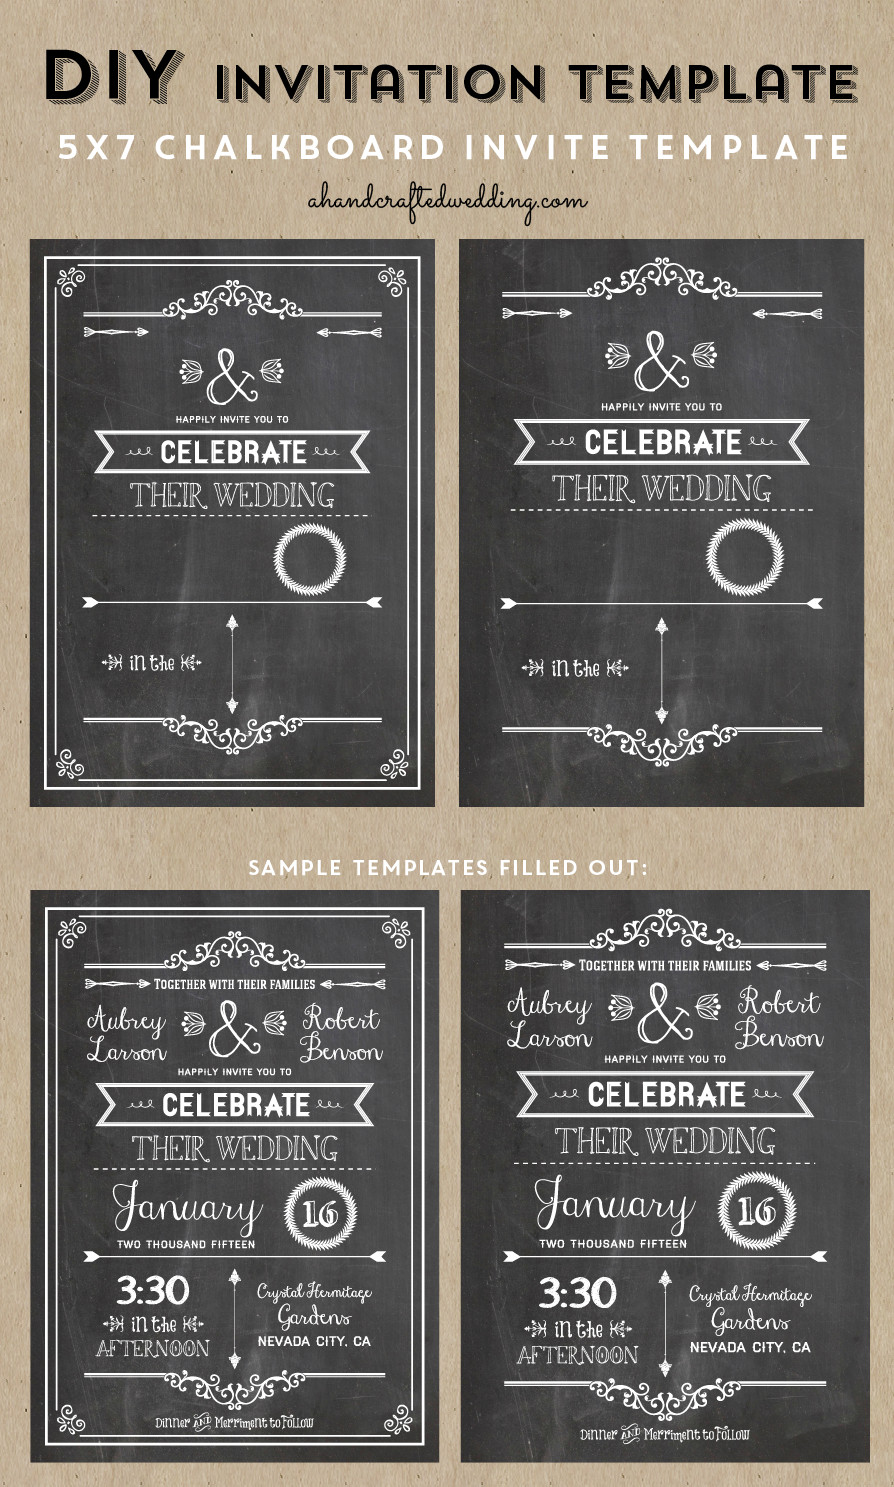 Chalkboard Invitation Template Free Check Out This Printable Diy Chalkboard Wedding Invitation